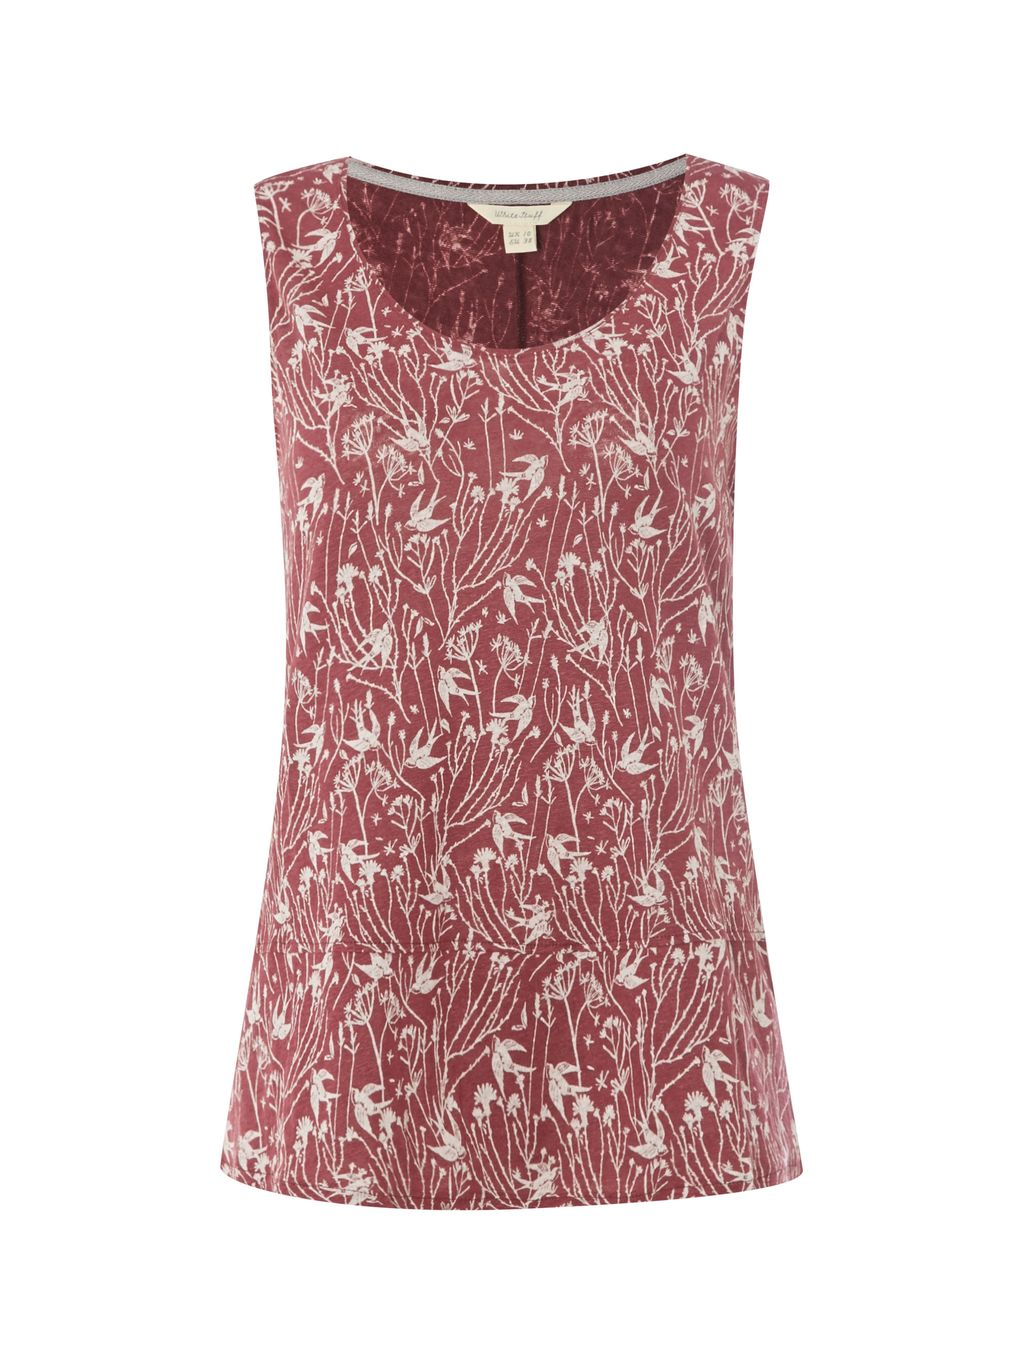 Swallow Linen Jersey Vest, Pink - neckline: round neck; sleeve style: sleeveless; style: vest top; predominant colour: terracotta; occasions: casual, creative work; length: standard; fibres: linen - 100%; fit: body skimming; sleeve length: sleeveless; texture group: linen; pattern type: fabric; pattern: patterned/print; pattern size: big & busy (top); season: s/s 2016; wardrobe: highlight